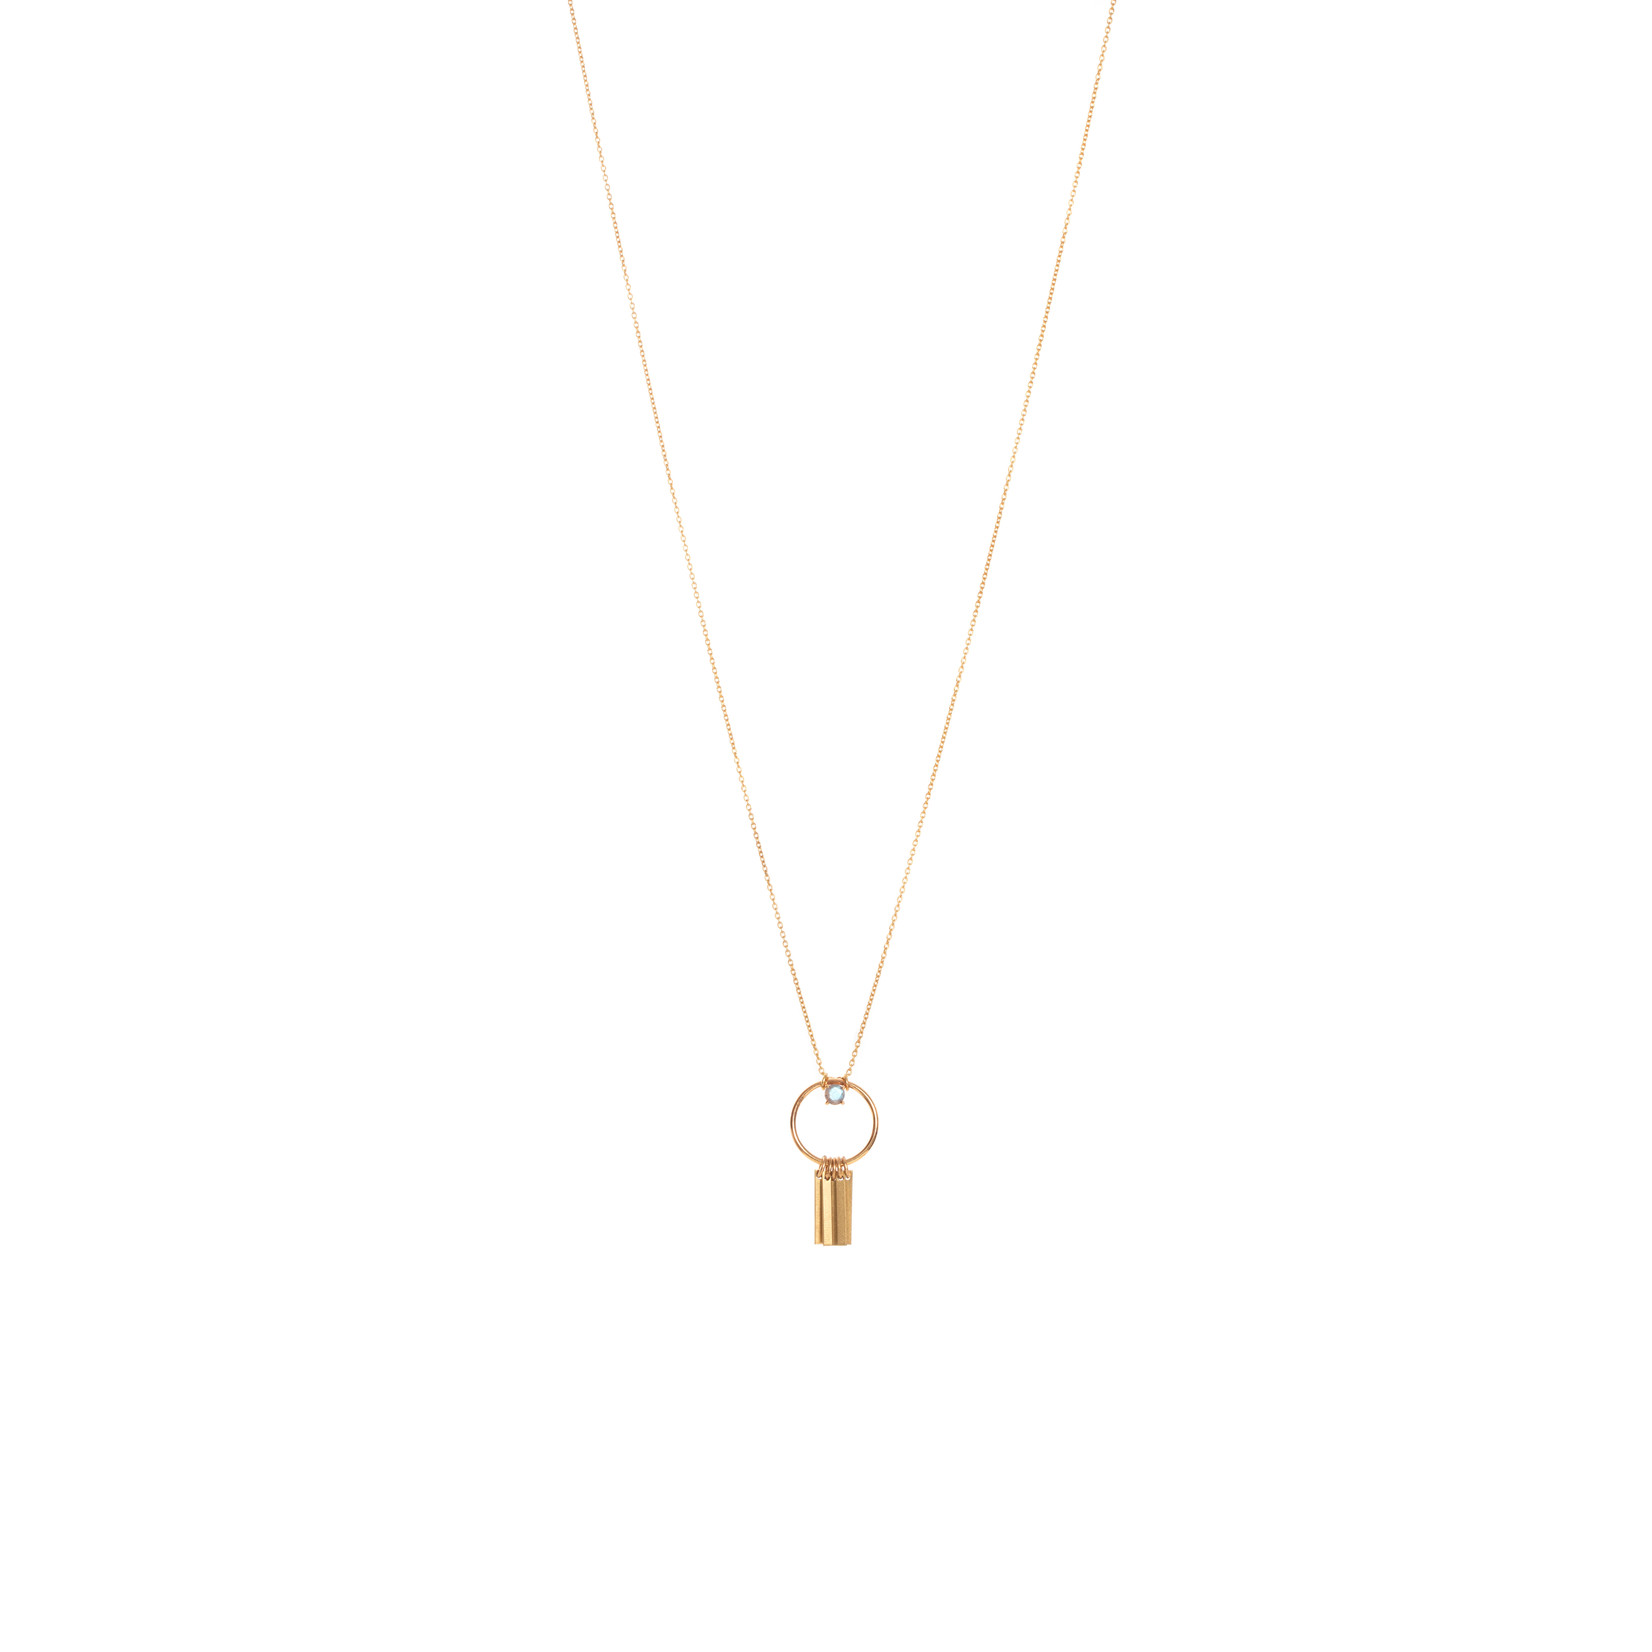 Hailey Gerrits Arbutus Necklace